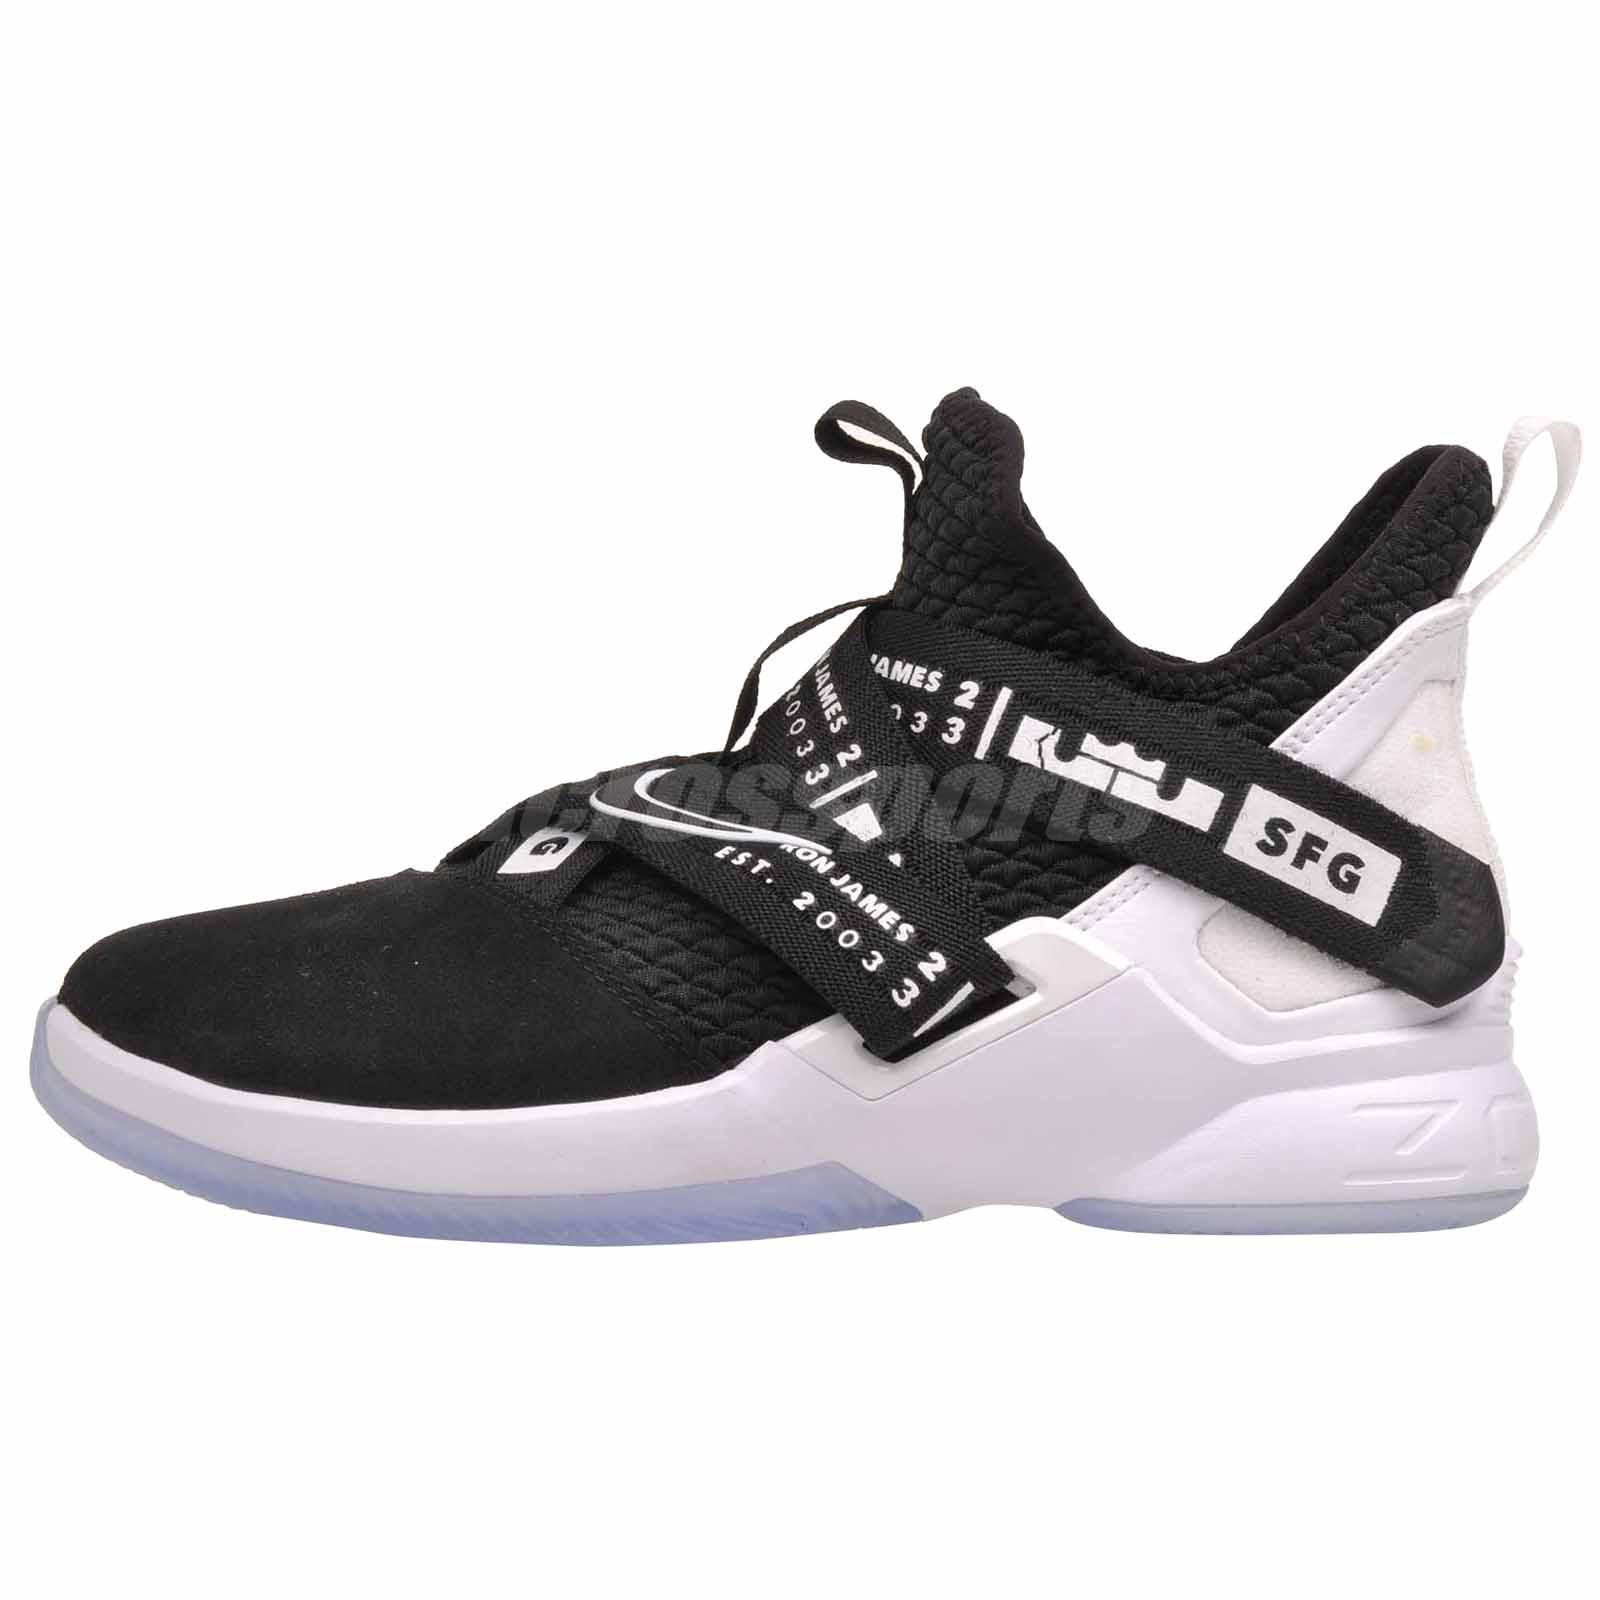 new product 53196 f2479 Details about Nike LeBron Soldier XII GS Basketball Kids Youth Shoes Black  White AA1352-005